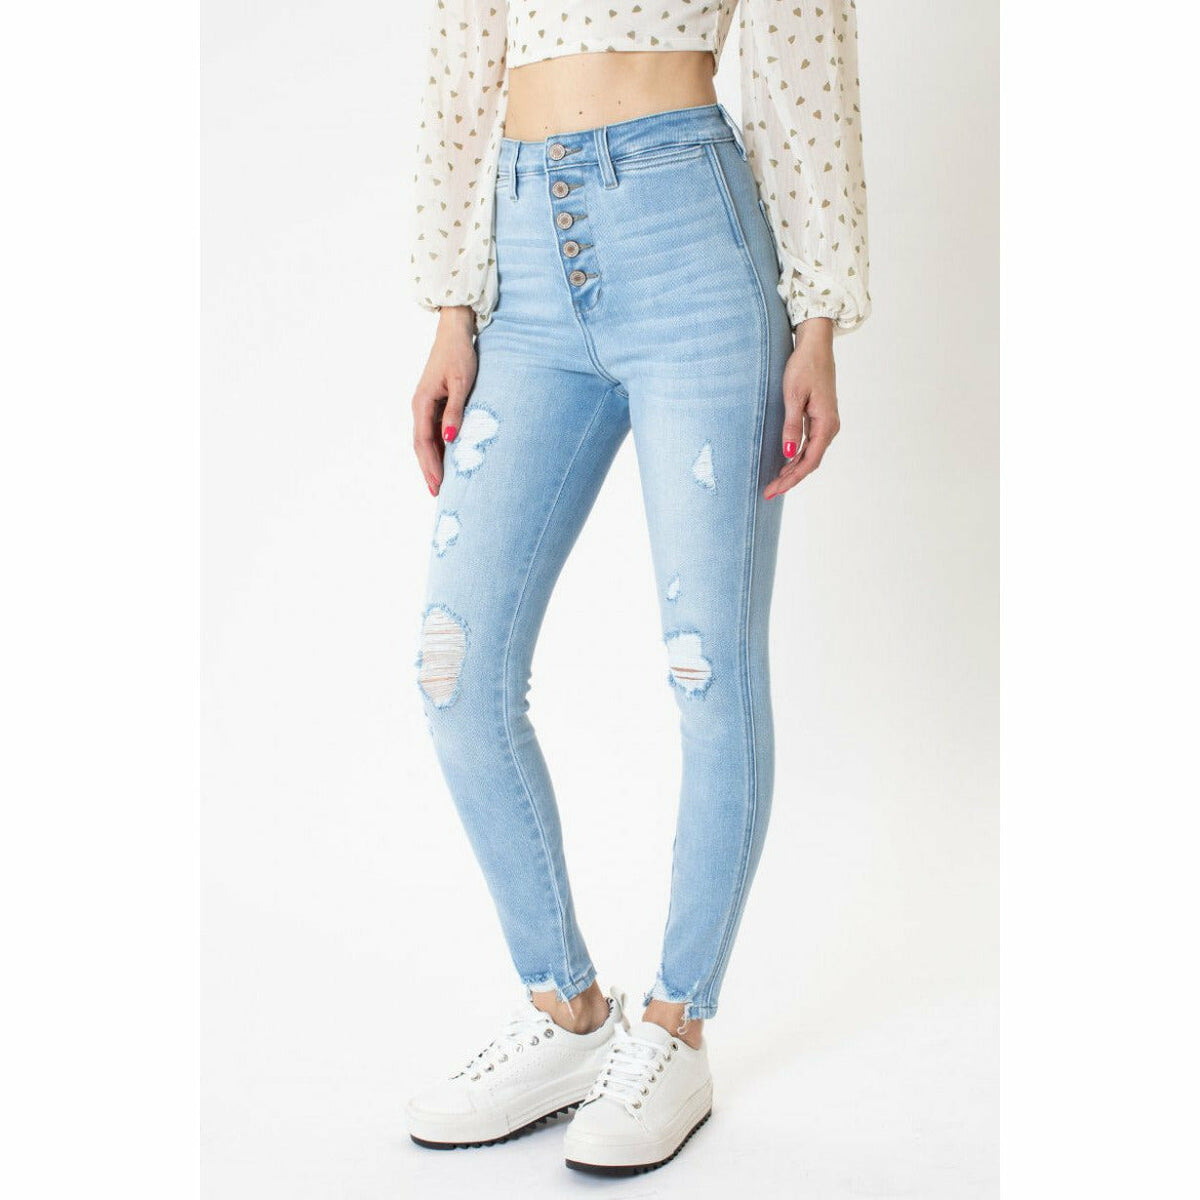 Kancan Fly Ankle Skinny Jeans